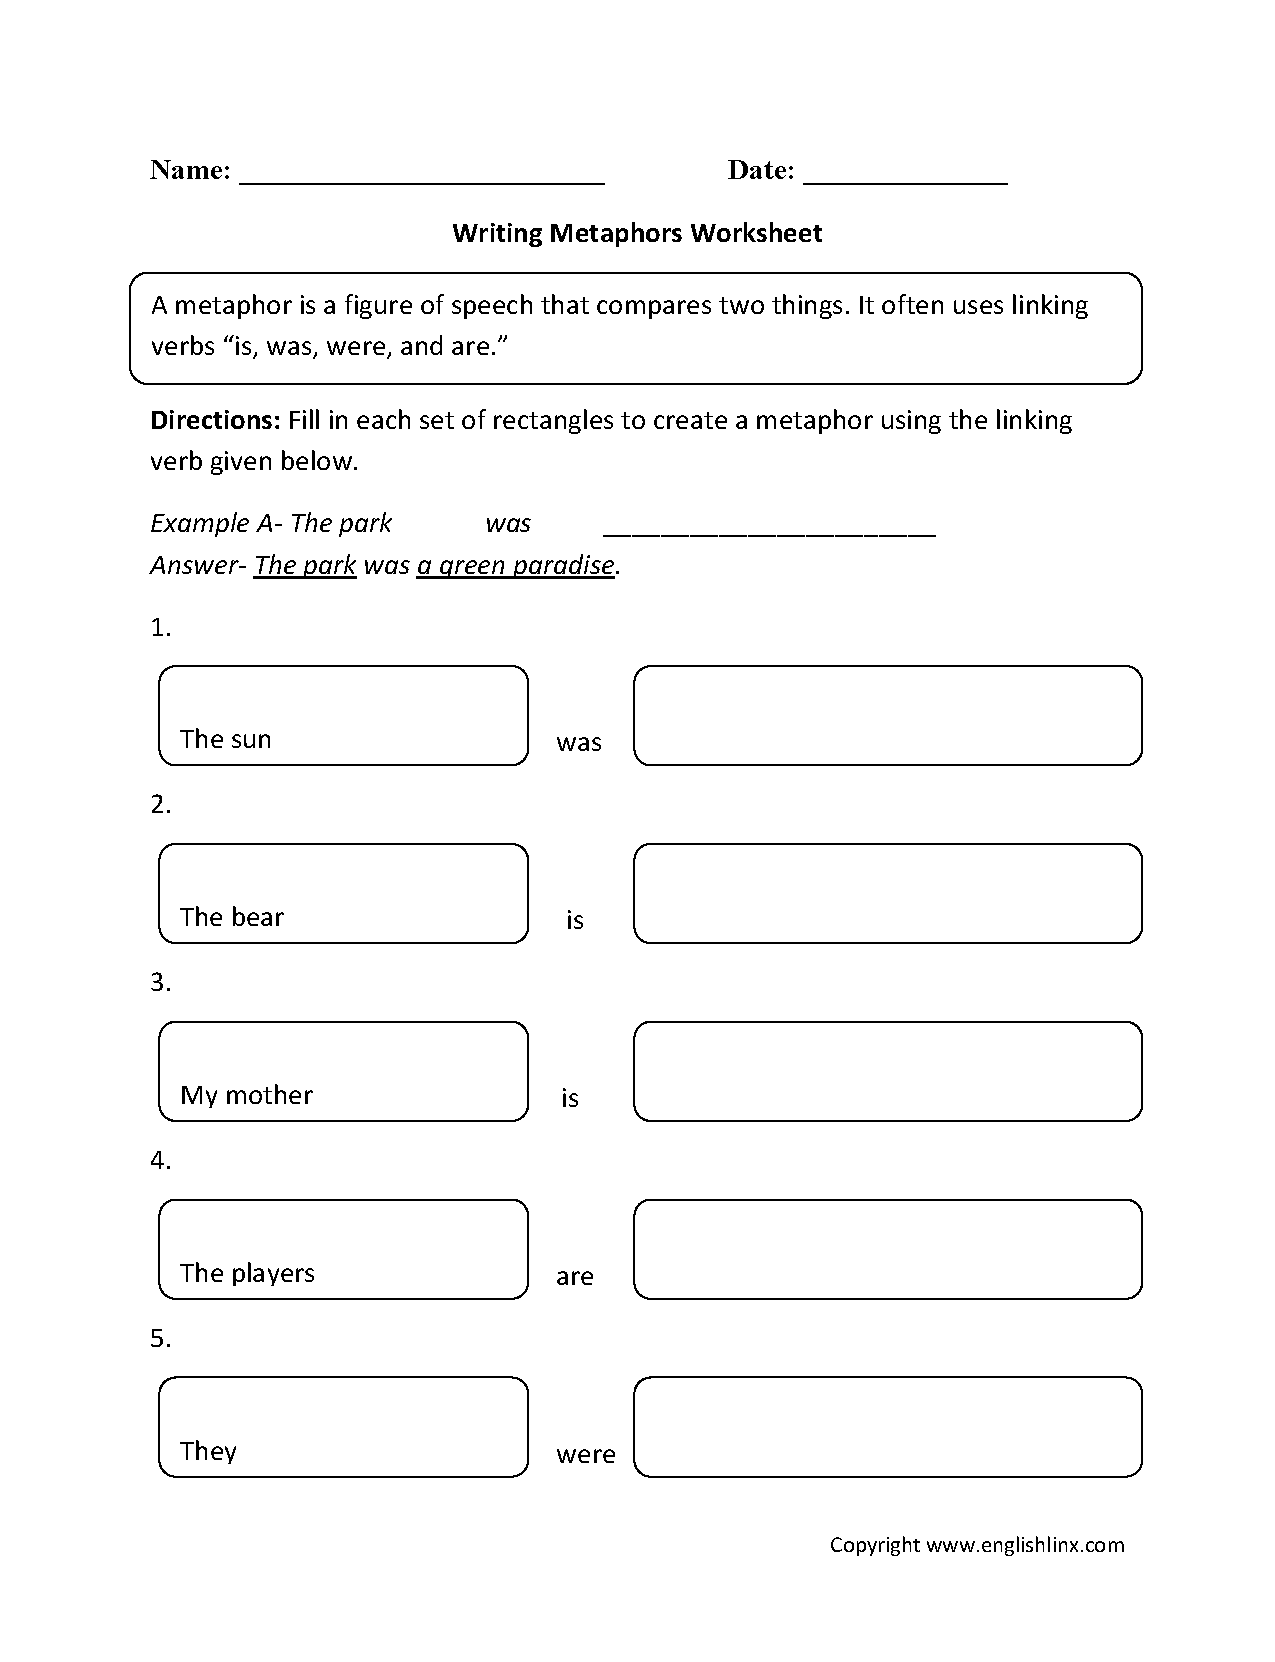 Aldiablosus  Nice Englishlinxcom  Metaphors Worksheets With Glamorous Worksheet With Awesome Asvab Worksheets Also Simple Future Tense Worksheets For Grade  In Addition Ordinal Numbers Printable Worksheets And Reading Comprehension Worksheets For Th Grade As Well As Correlation Vs Causation Worksheet Additionally Were Where Worksheet From Englishlinxcom With Aldiablosus  Glamorous Englishlinxcom  Metaphors Worksheets With Awesome Worksheet And Nice Asvab Worksheets Also Simple Future Tense Worksheets For Grade  In Addition Ordinal Numbers Printable Worksheets From Englishlinxcom